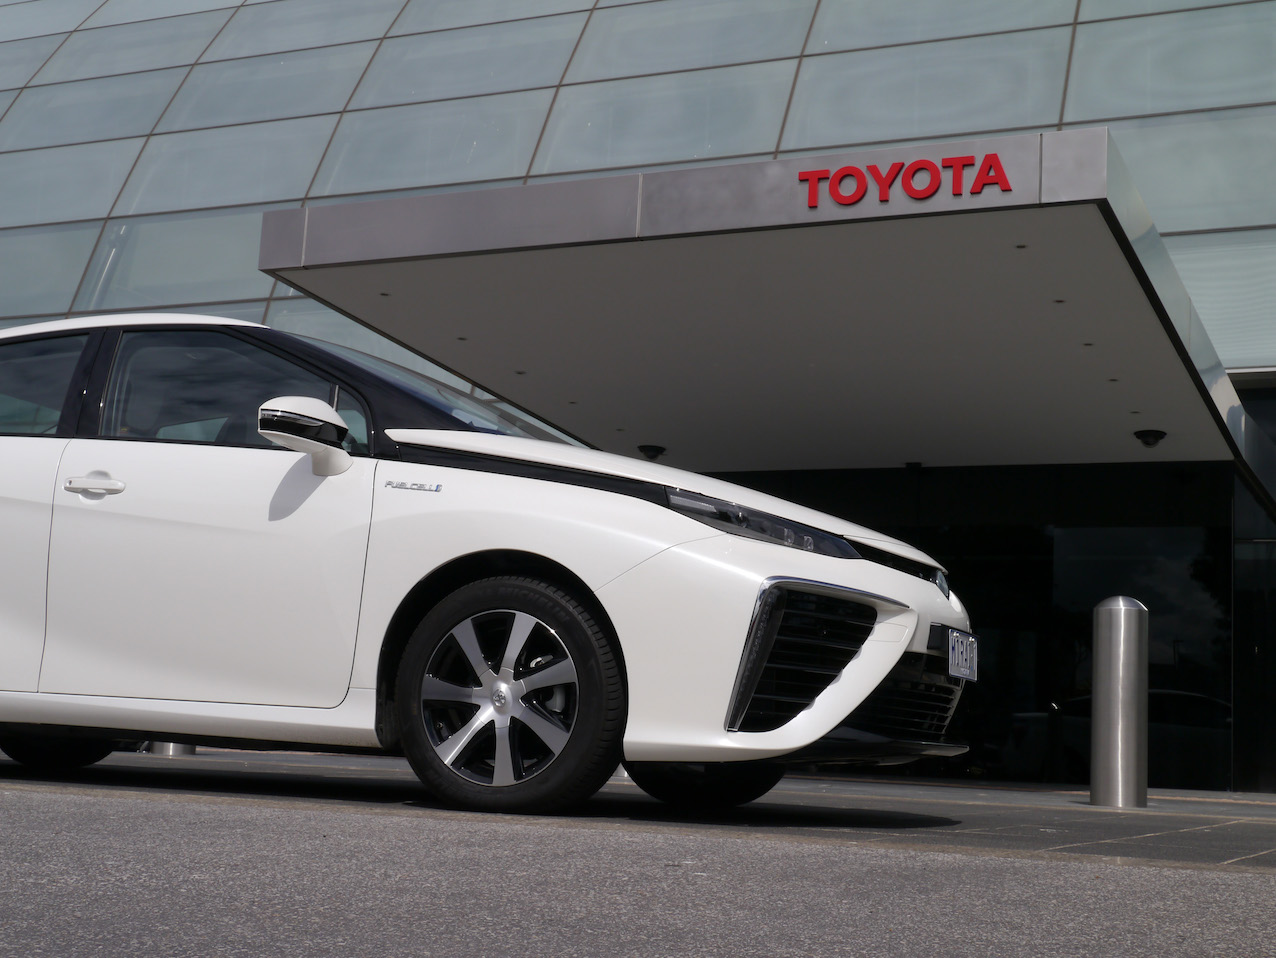 Toyota Australia Targets Commercial Fleets With Long-Term Hydrogen Plan